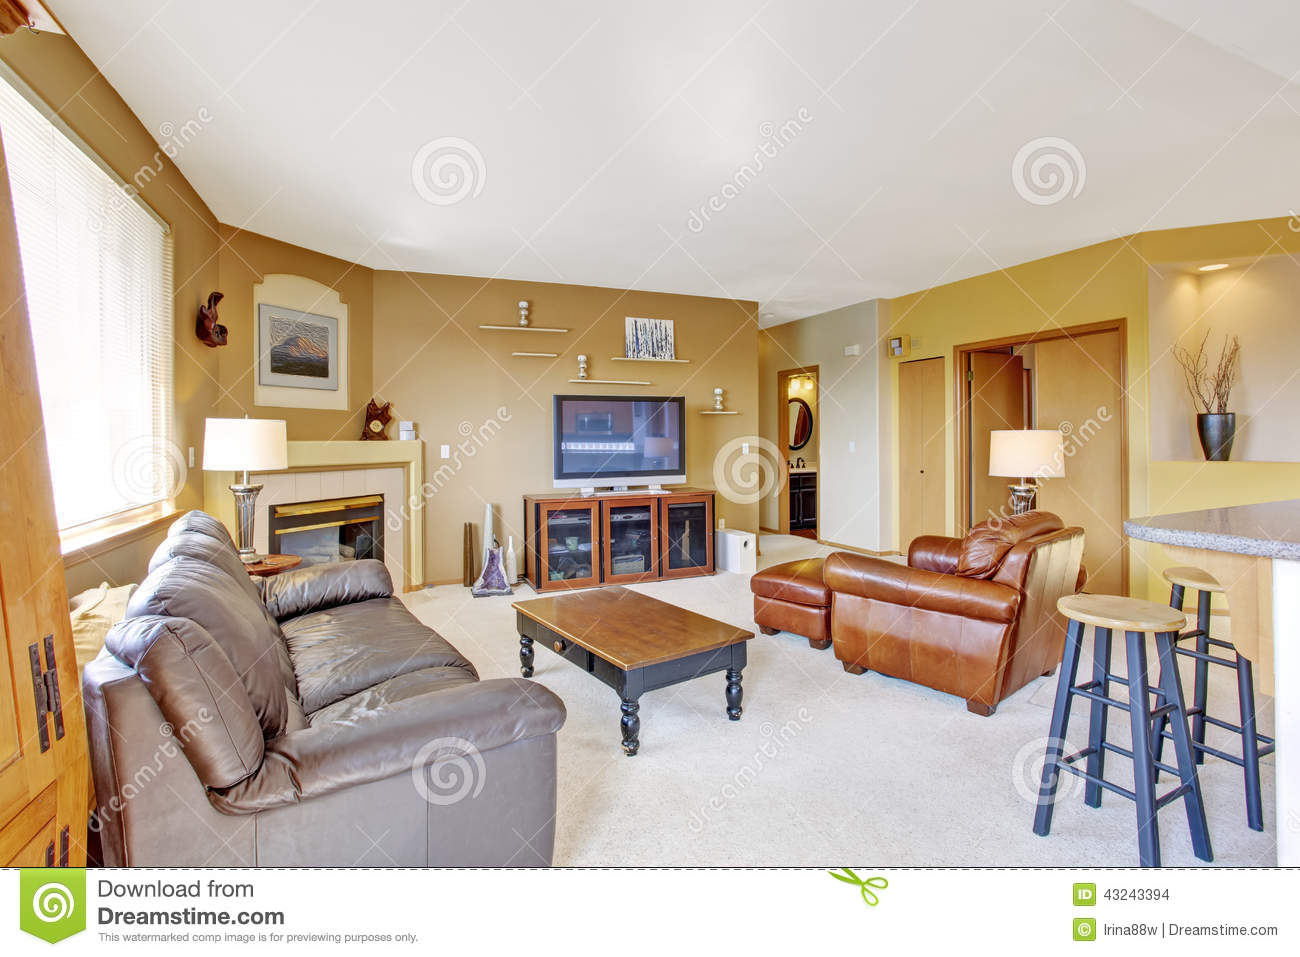 Cozy Living Room With Fireplace And Leather Couch Stock Photo Image